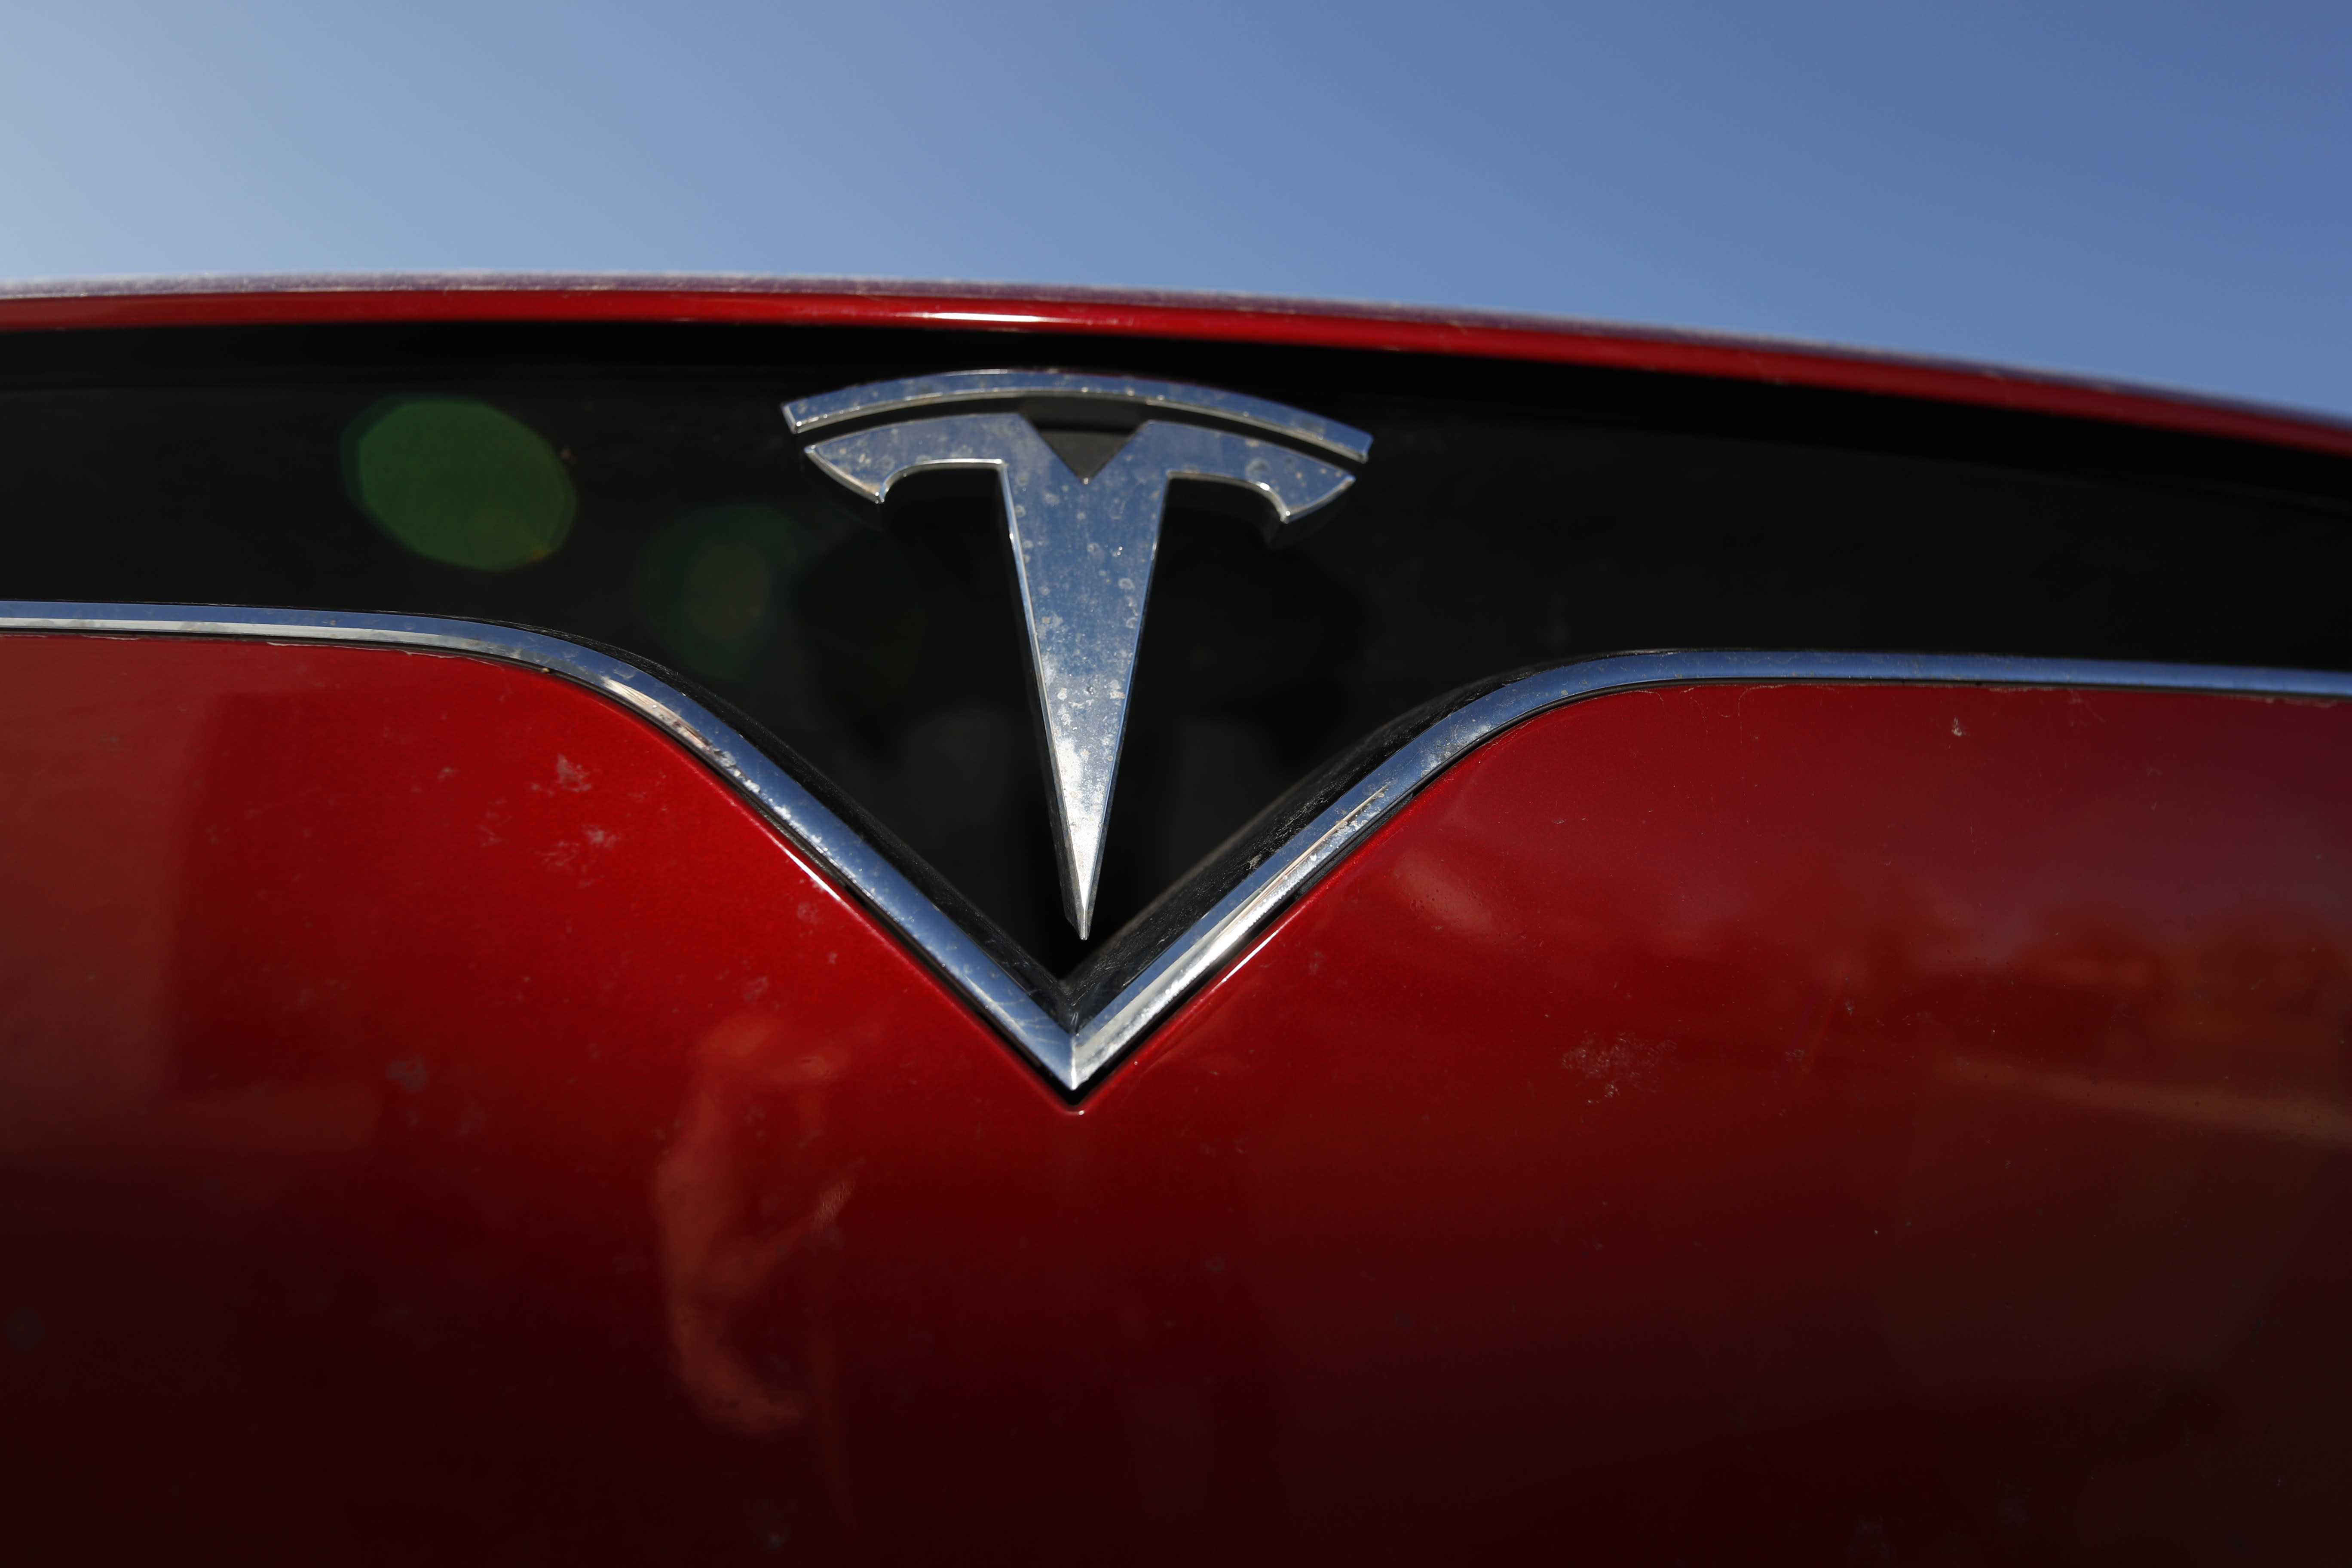 Tesla shares, fueled by Fed, surge on bullish analyst calls